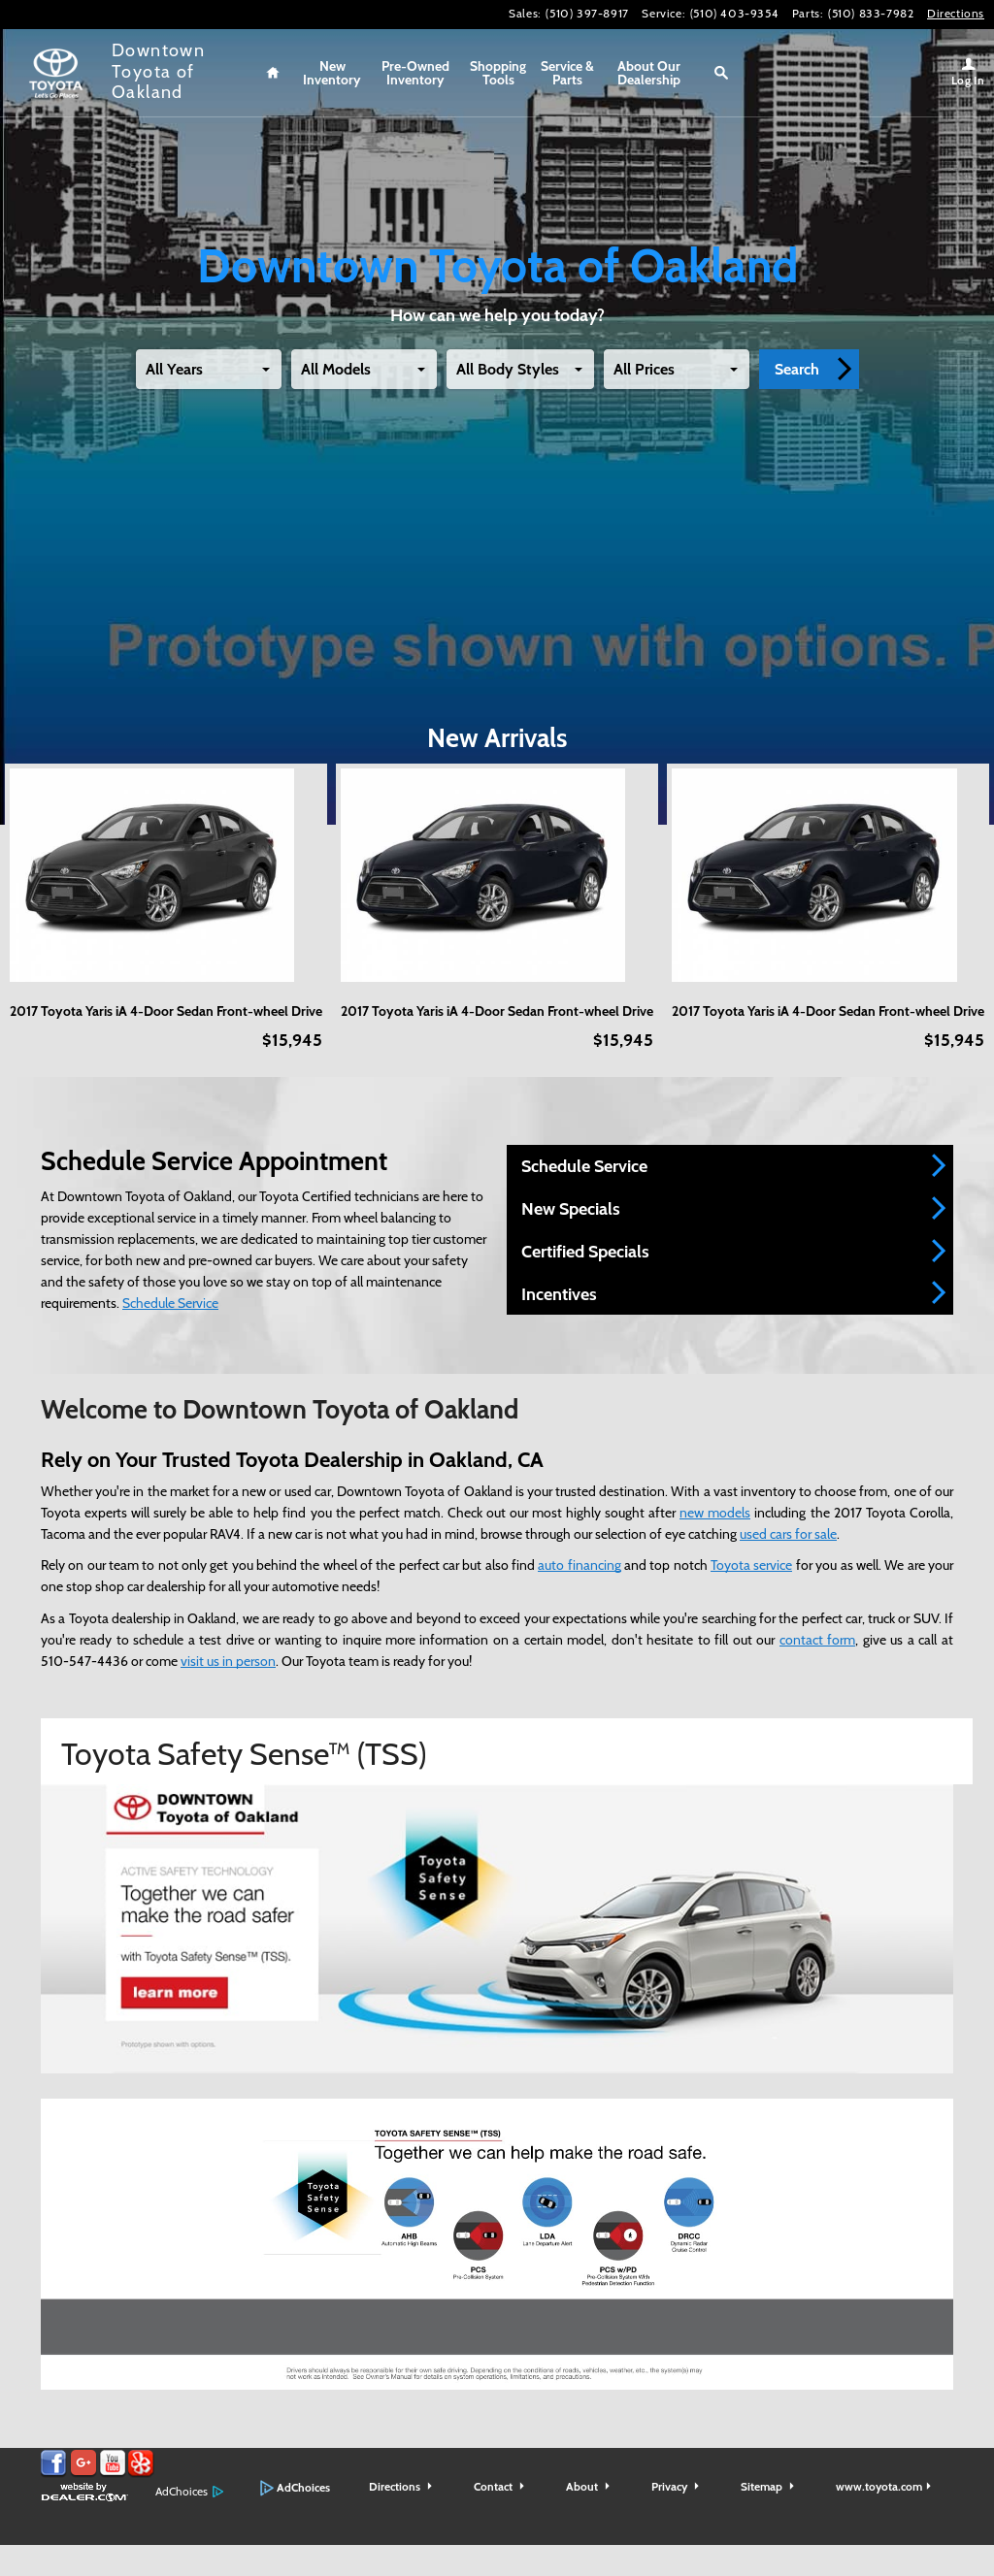 Downtown Toyota Of Oakland Website History